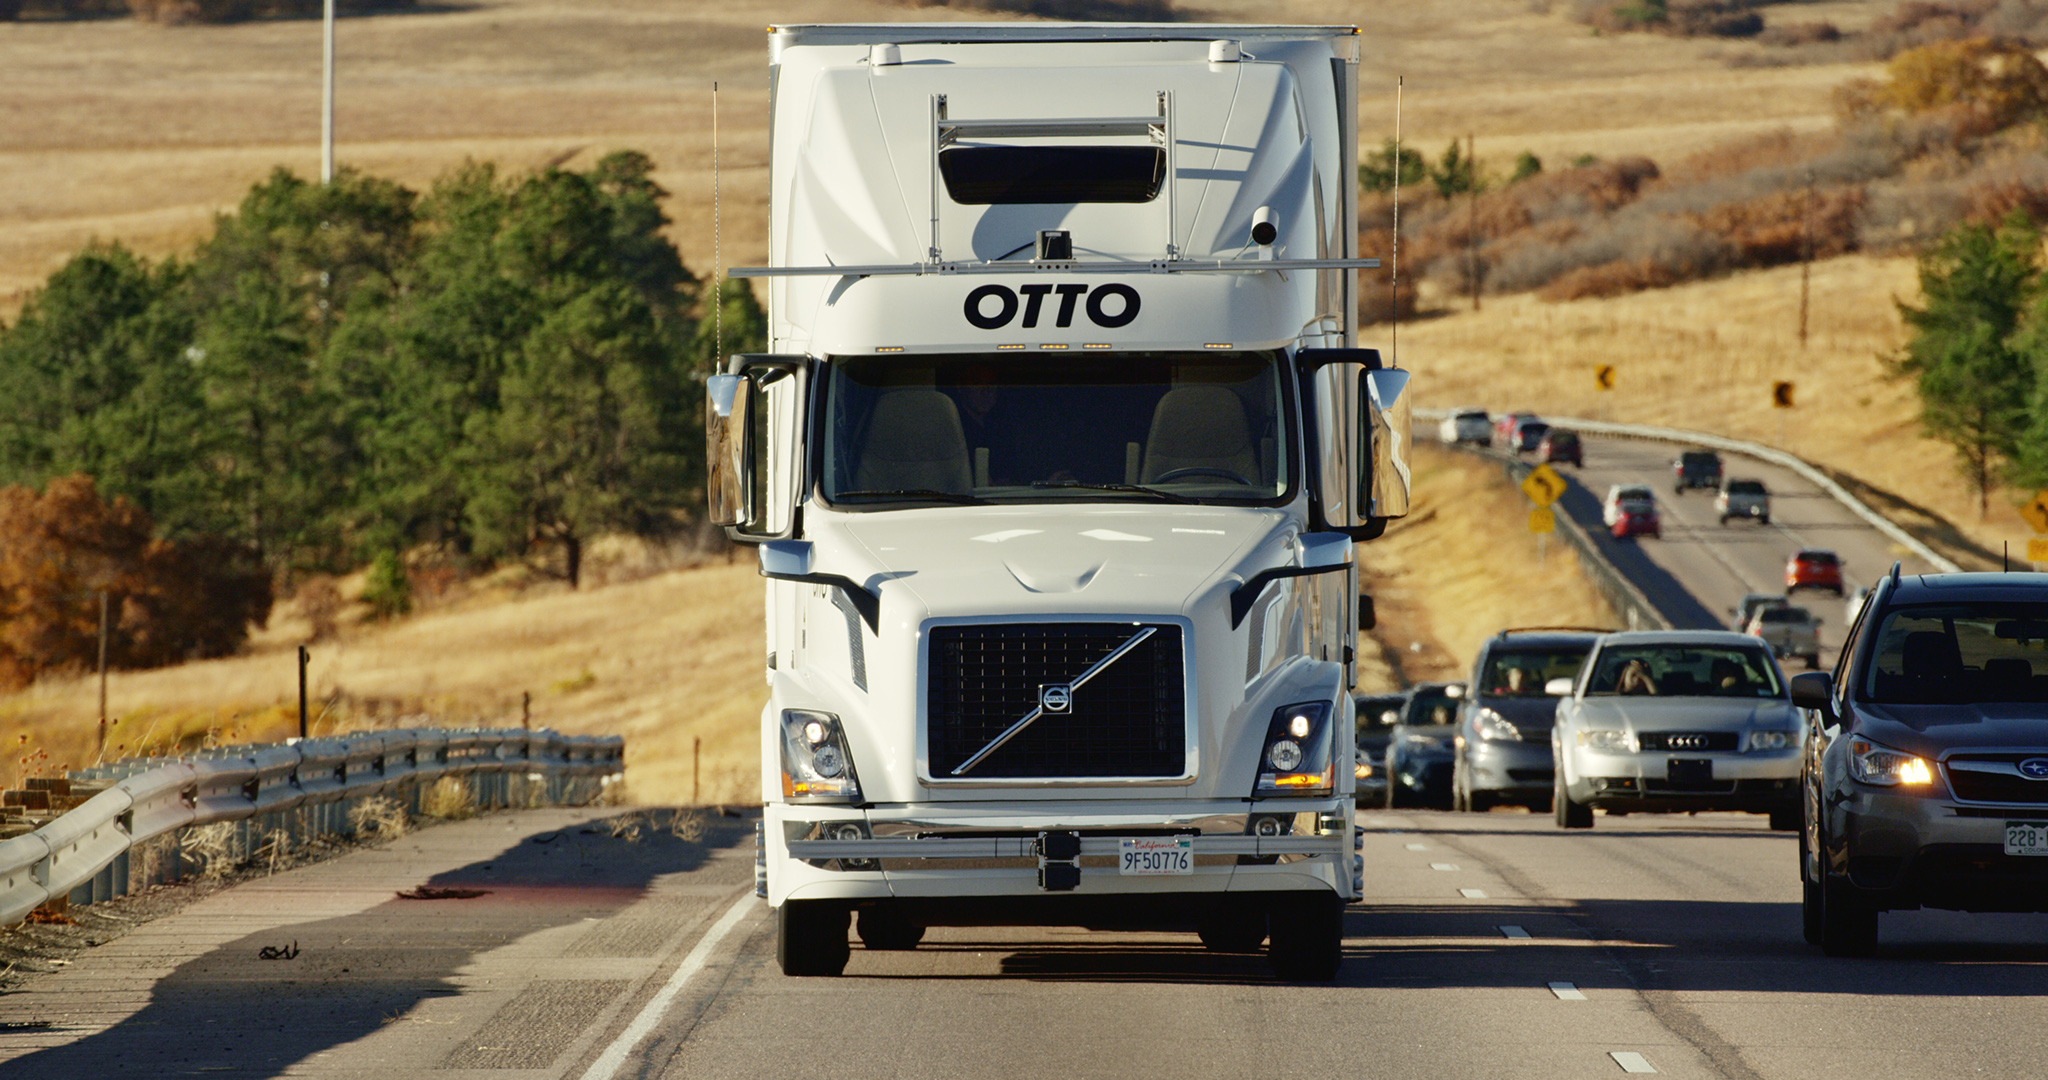 Otto Self-Driving Beer Truck